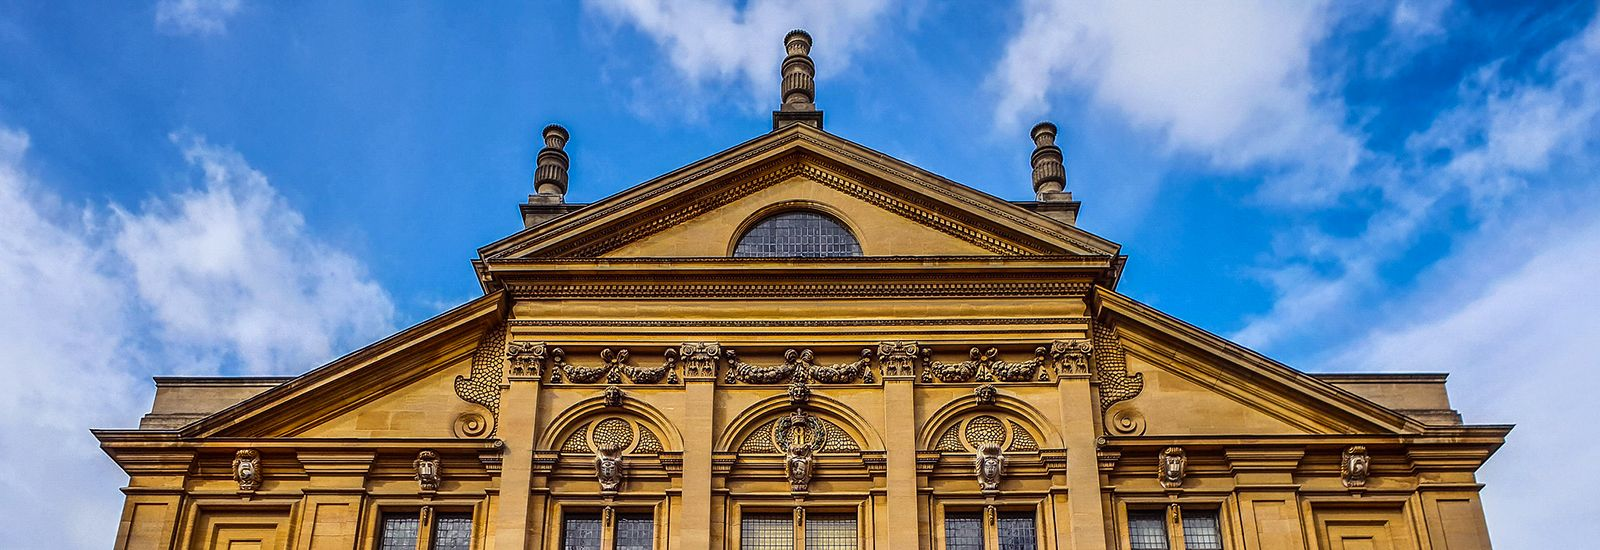 The back and spires of the Sheldonian against a blue sky